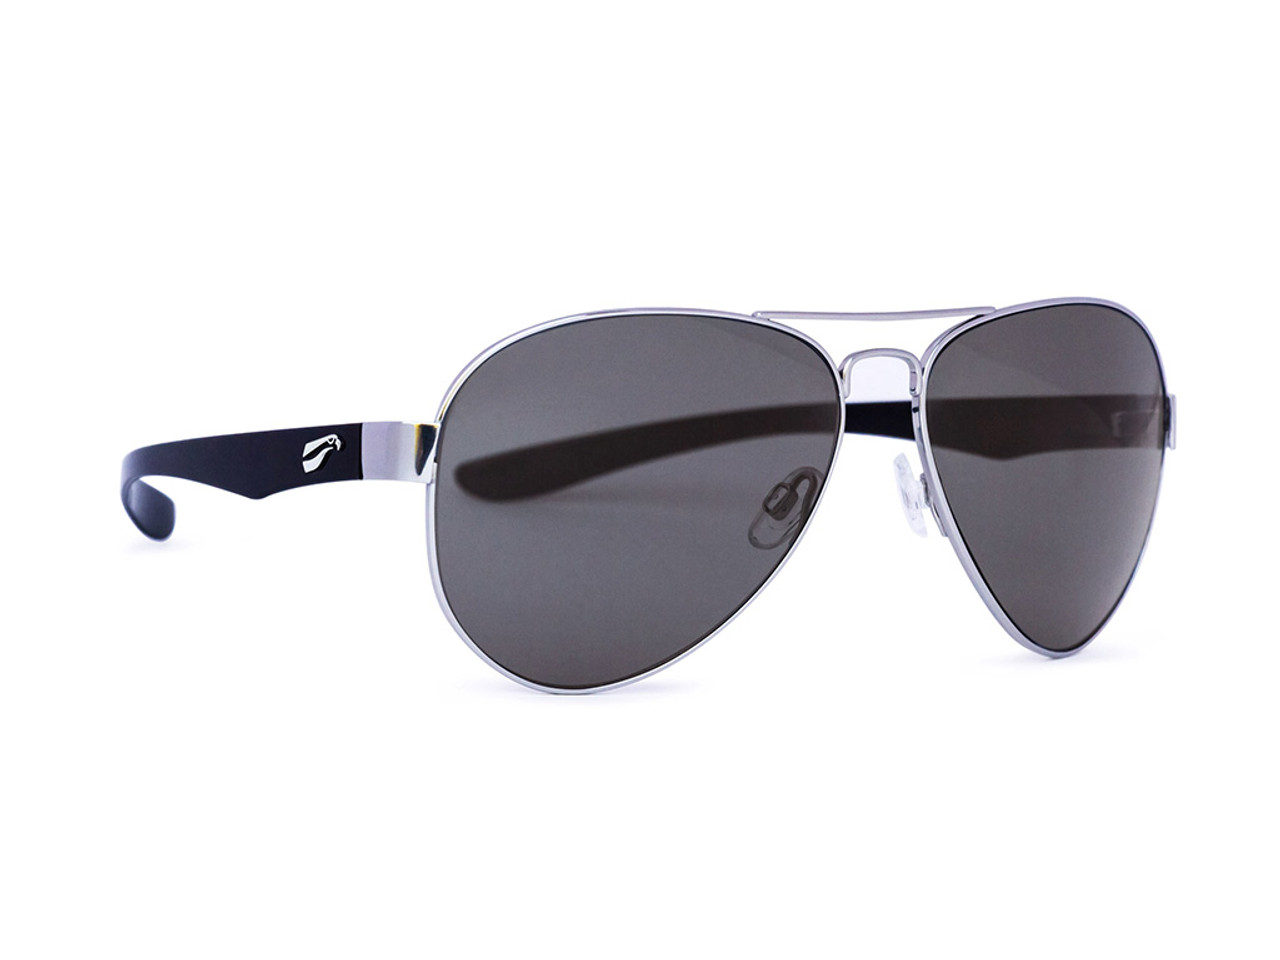 Cooper Titanium Aviator - Silver Frame with Solid Gray Lenses